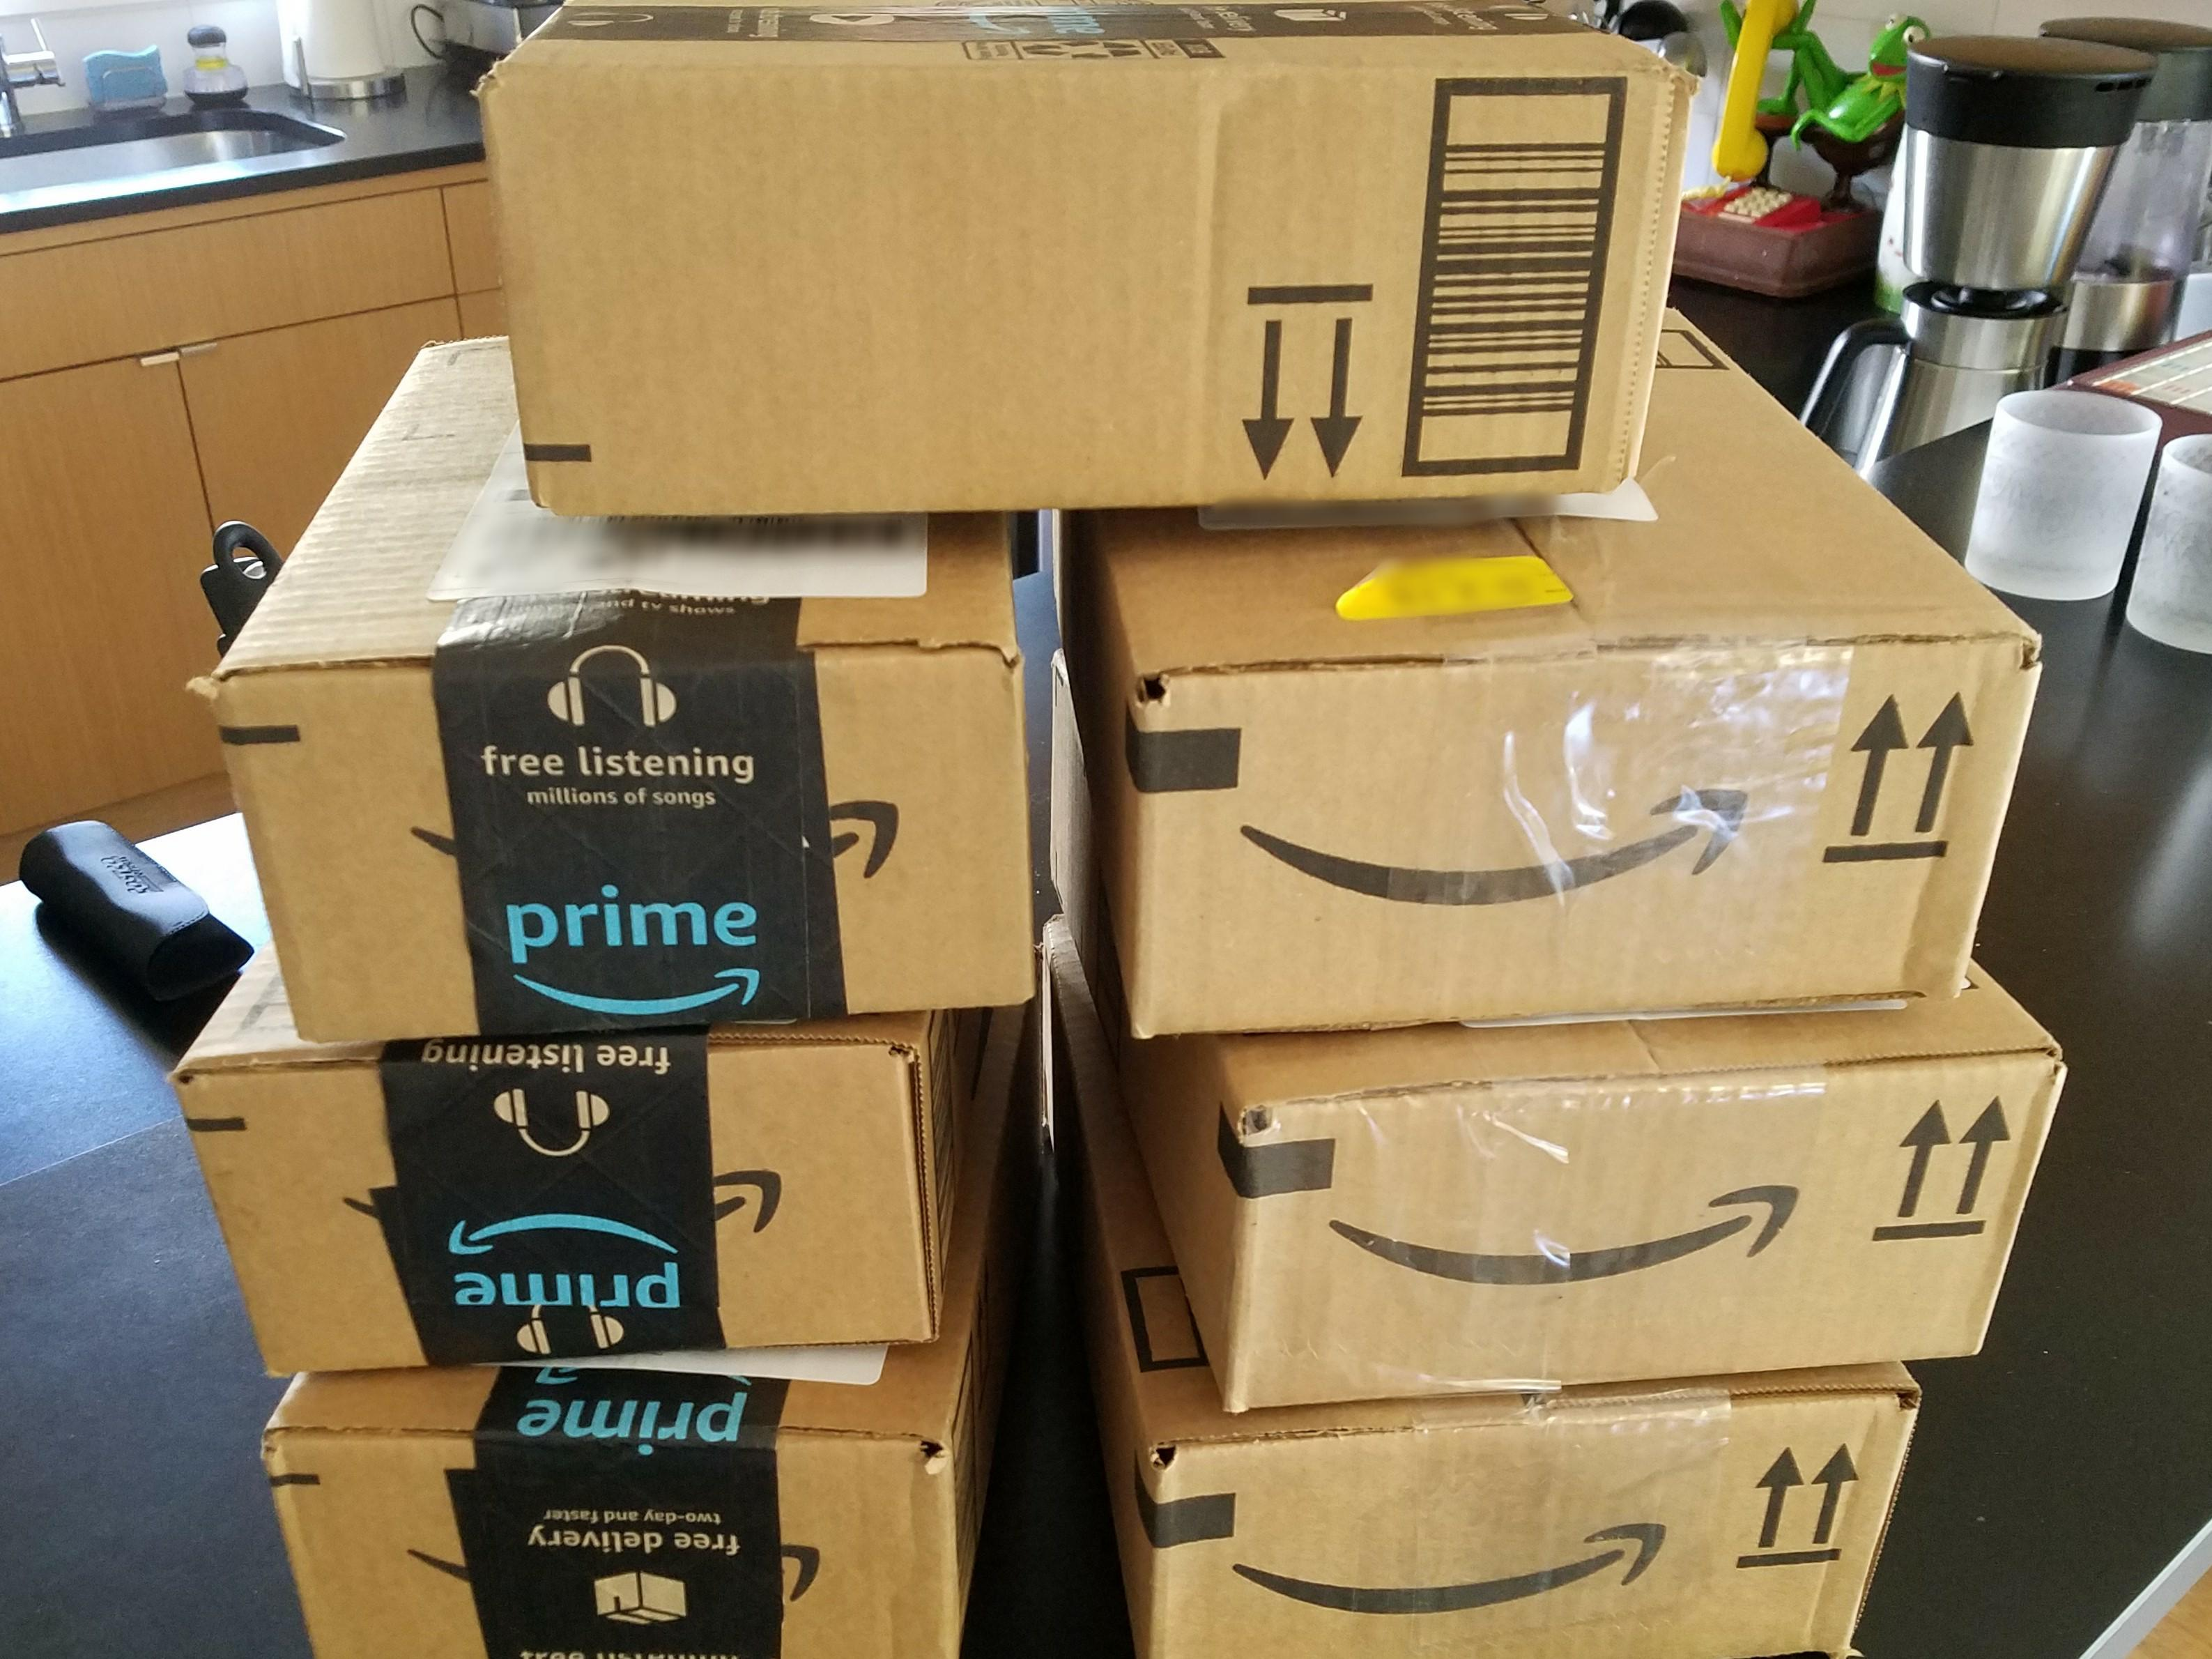 Unpack This Amazon Shipping Snafu Sends Single Order Of Seven Small Items In Seven Separate Boxes Geekwire